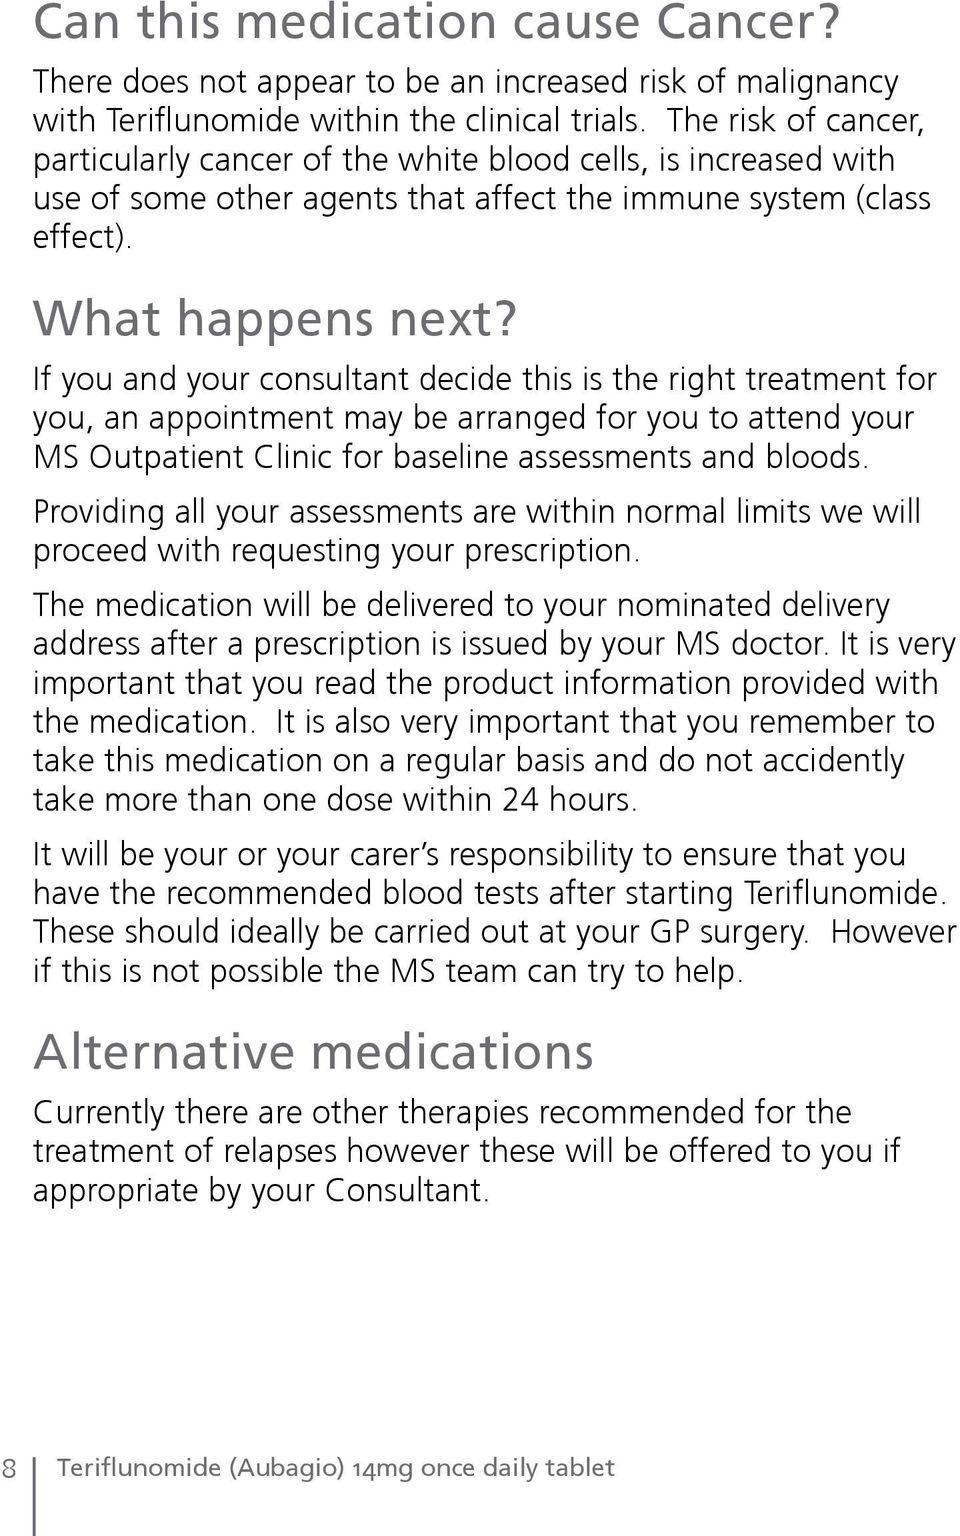 If you and your consultant decide this is the right treatment for you, an appointment may be arranged for you to attend your MS Outpatient Clinic for baseline assessments and bloods.